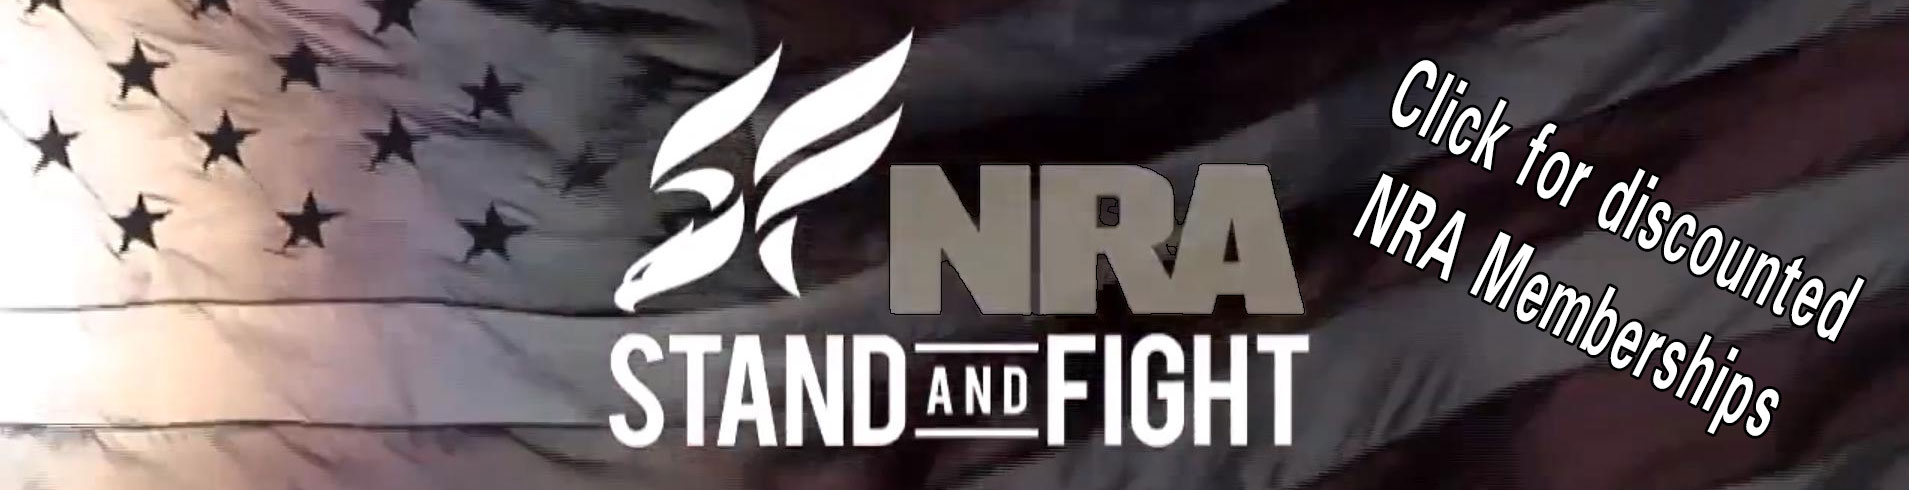 Join the NRA with discounted memberships